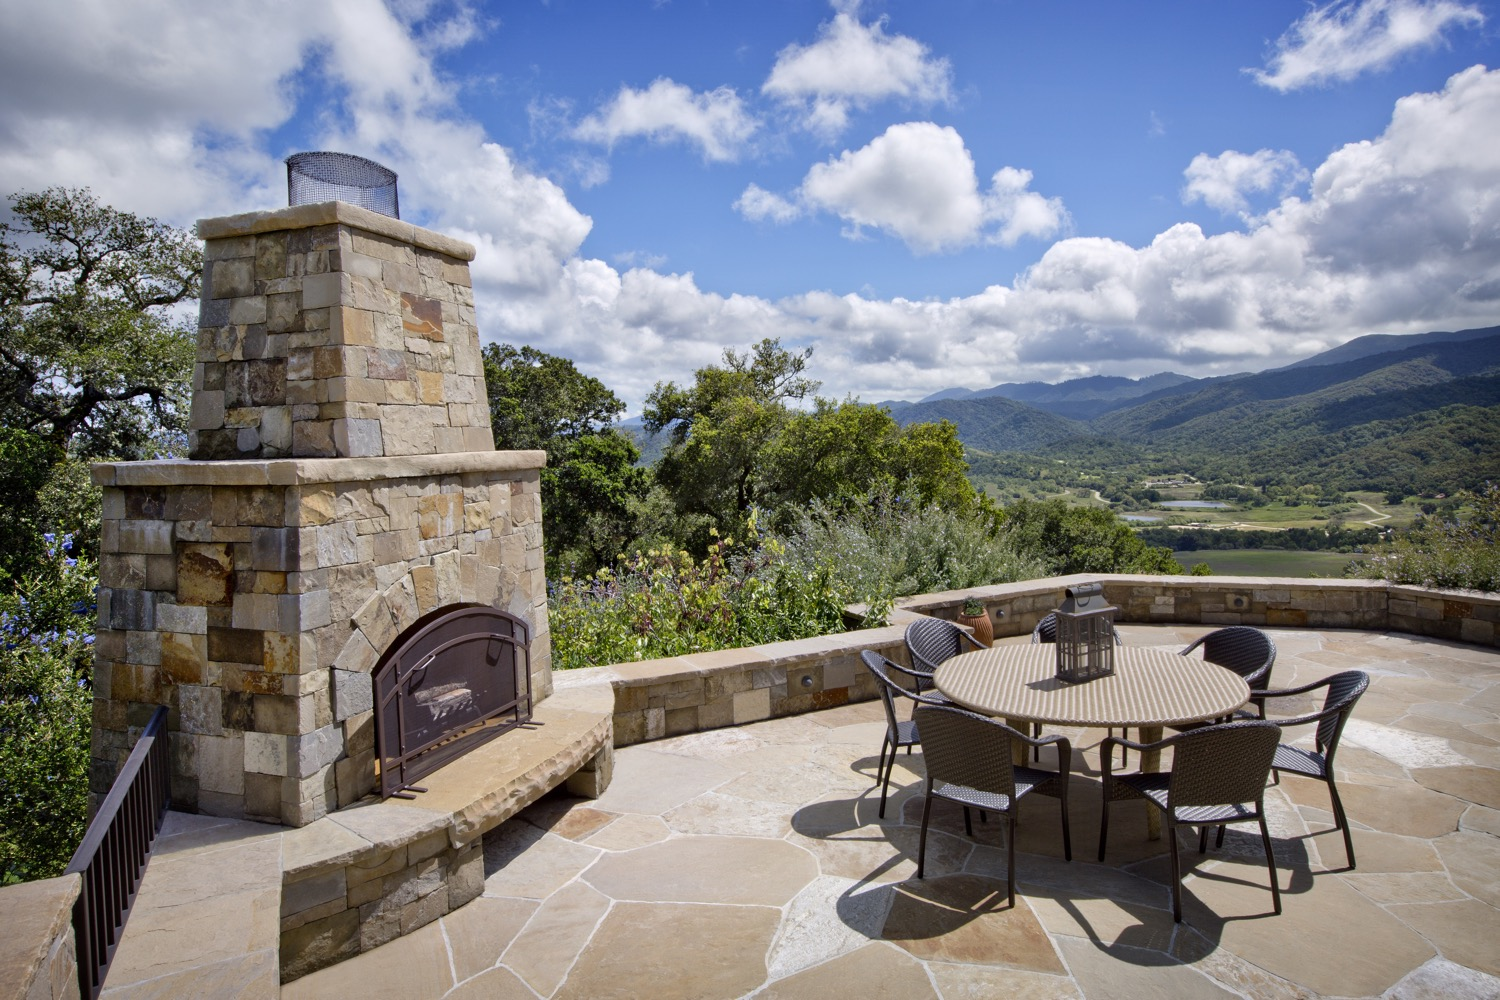 The expansive outdoor dining terrace is anchored by a large fireplace, perfect for large family gatherings.